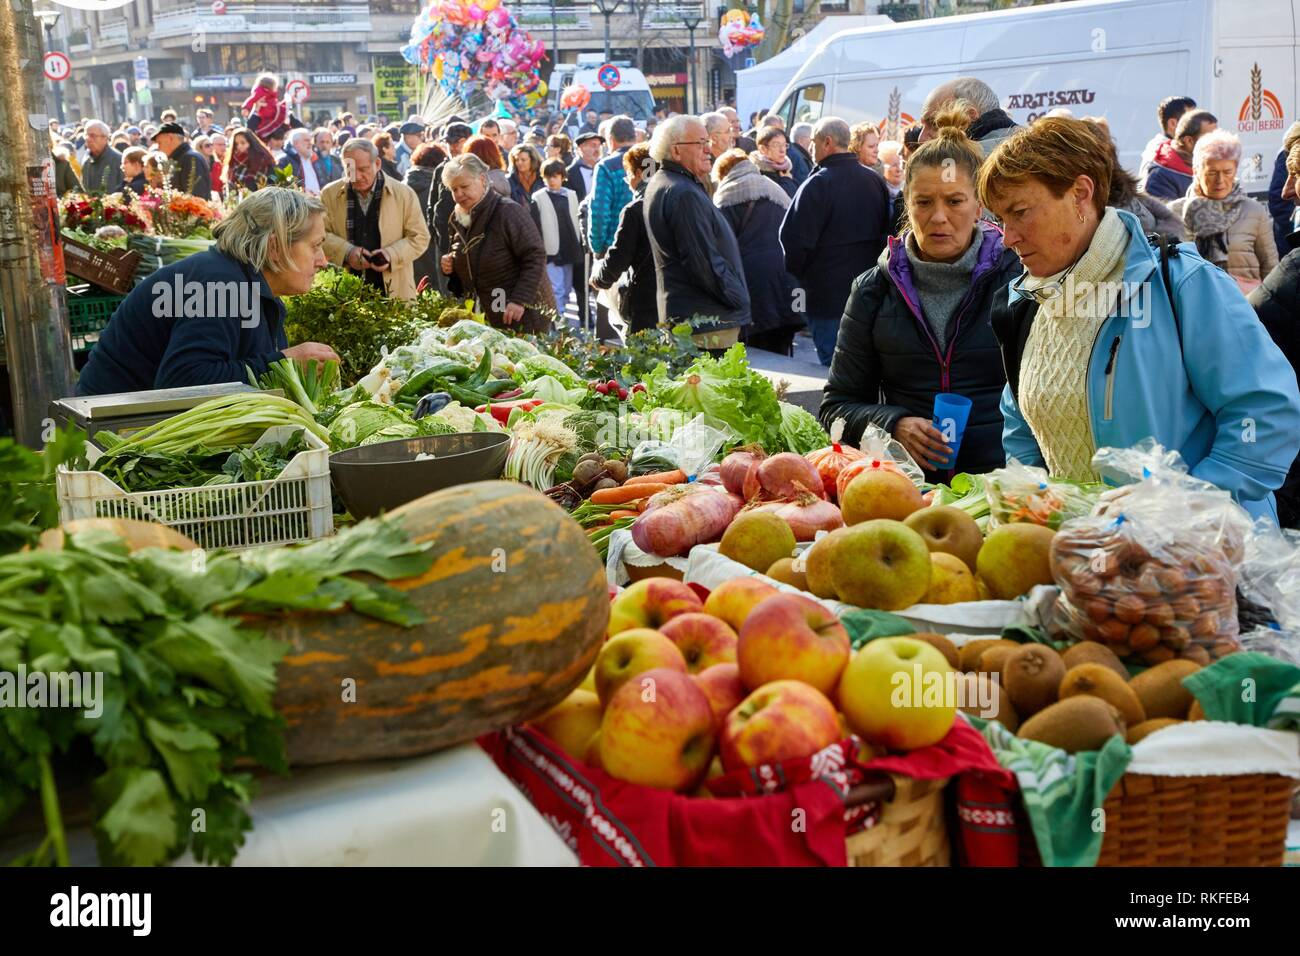 Vegetables Market, Feria de Santo Tomás, The feast of St. Thomas takes place on December 21. During this day San Sebastián is transformed into a - Stock Image